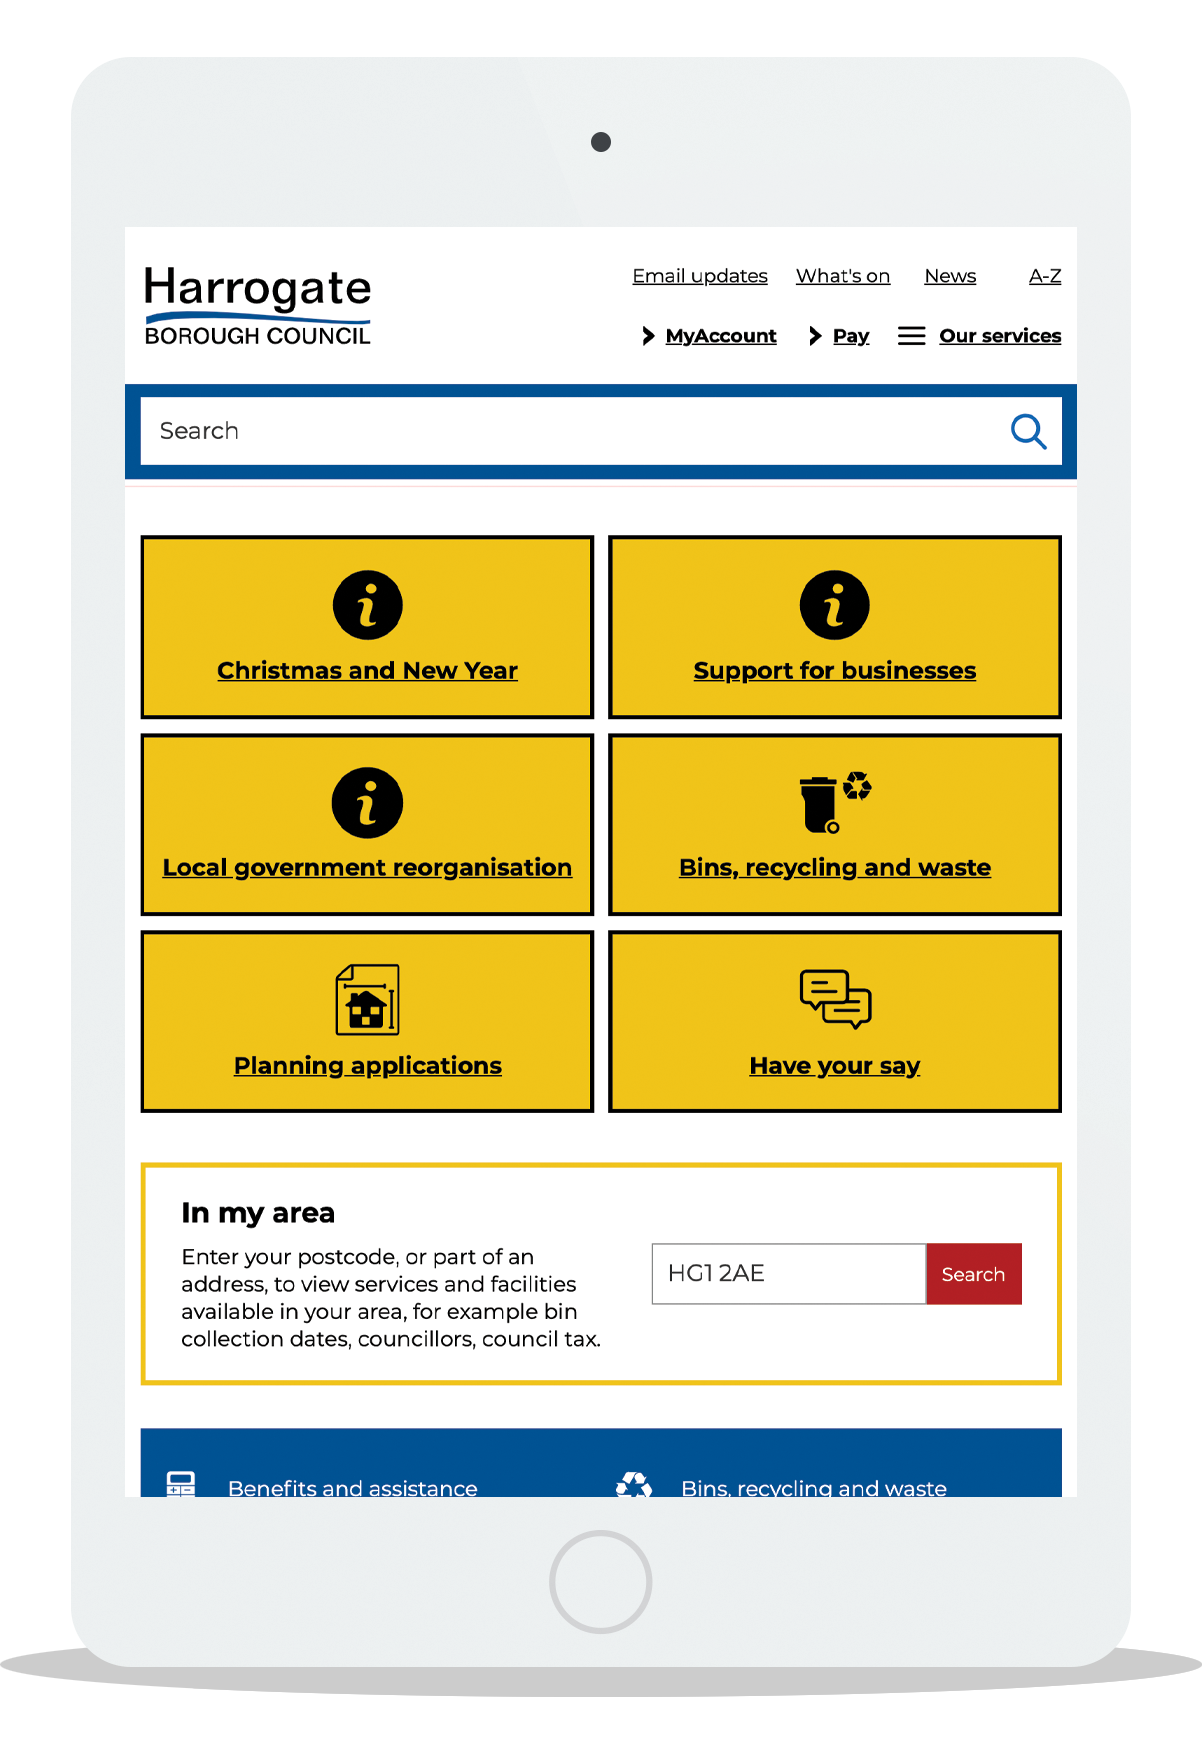 Harrogate council's homepage